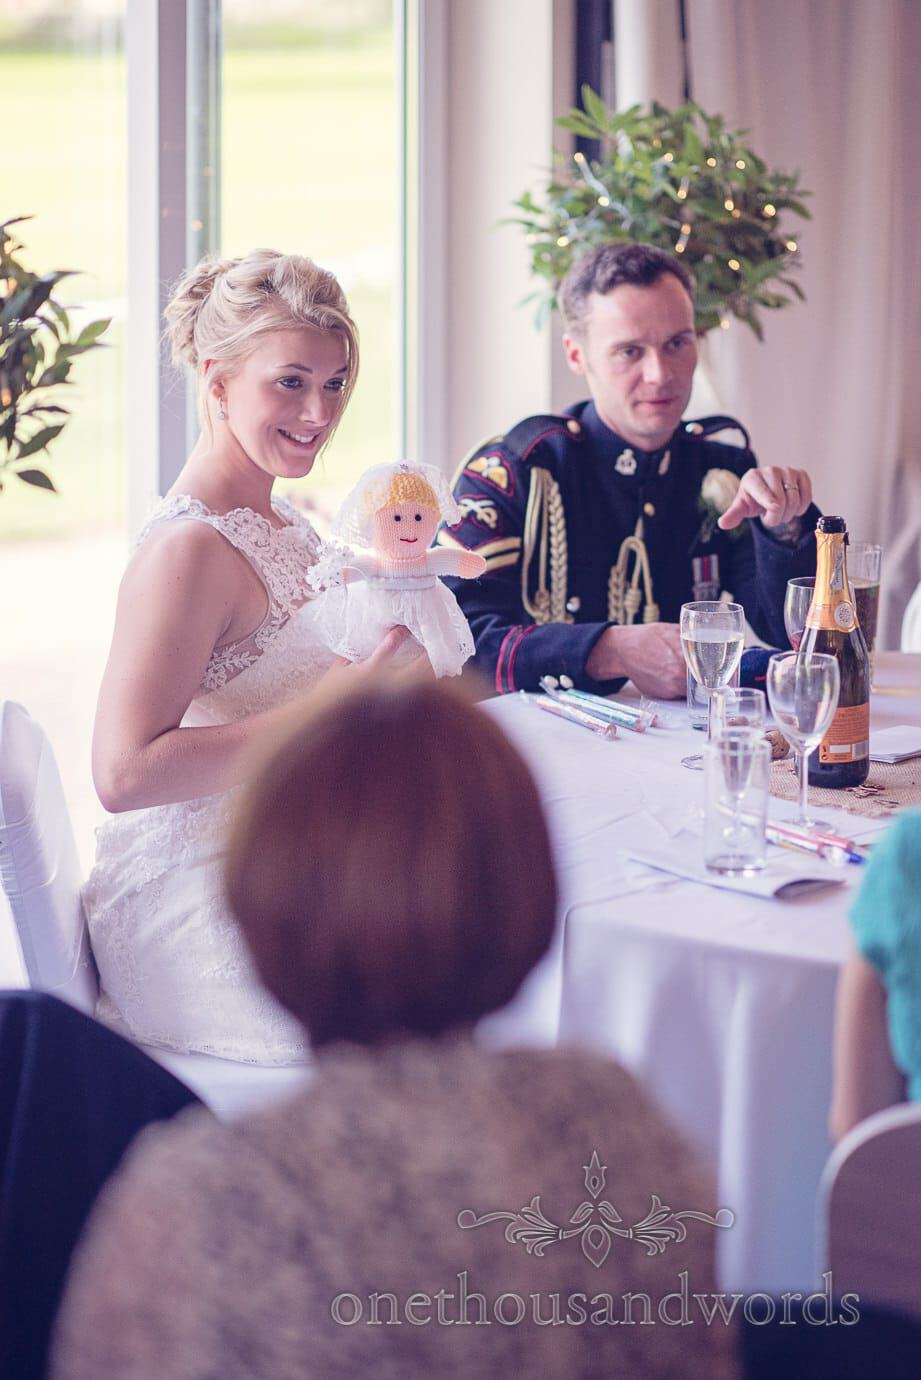 Beautiful blonde Bride shows off knitted bride doll version of herself